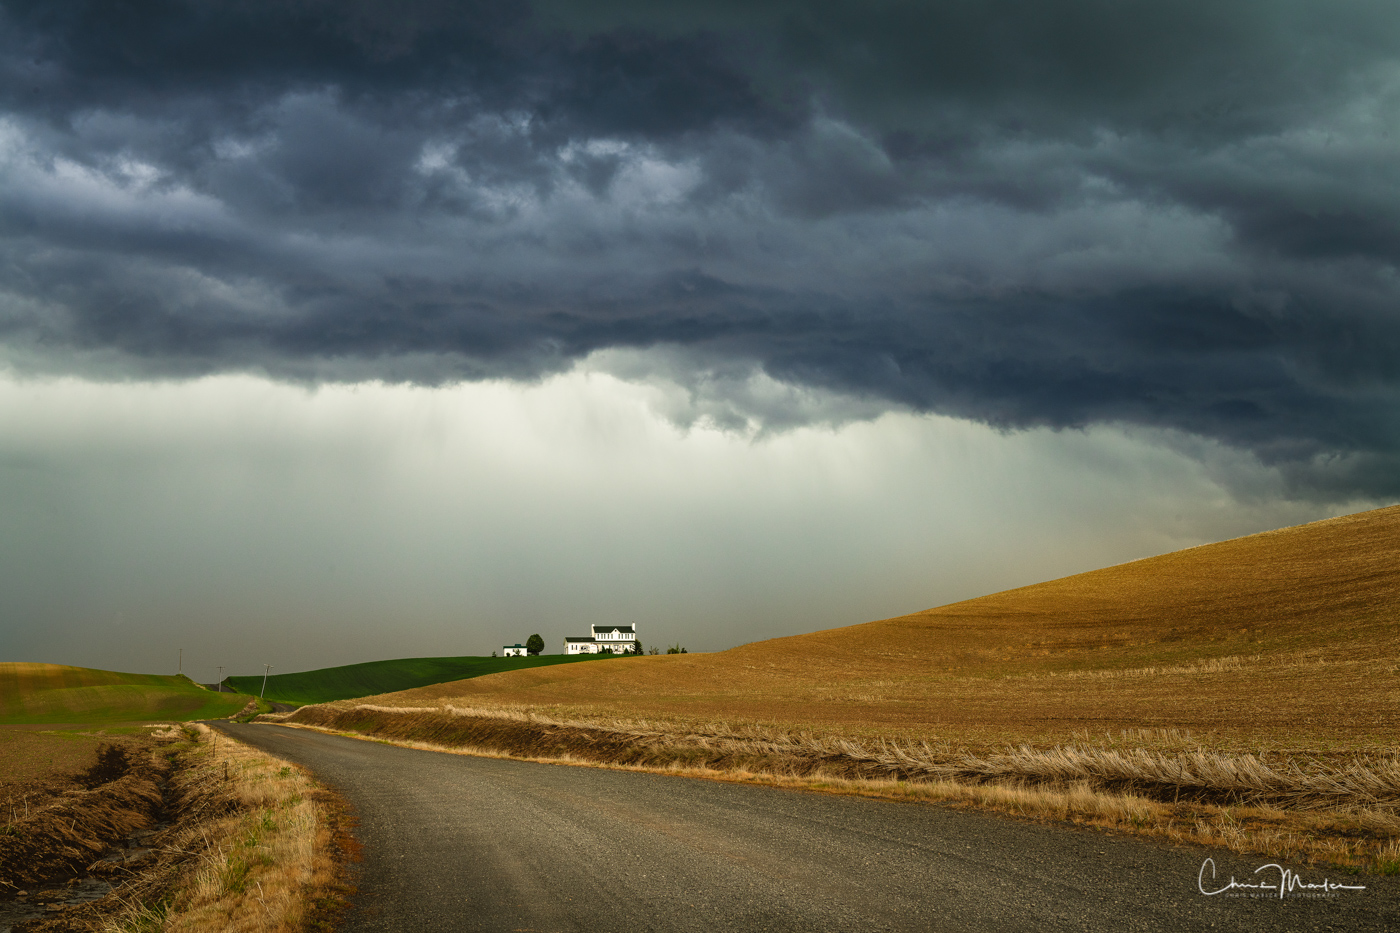 Palouse, farm, thunderstorm, clouds, drama, country road, photo